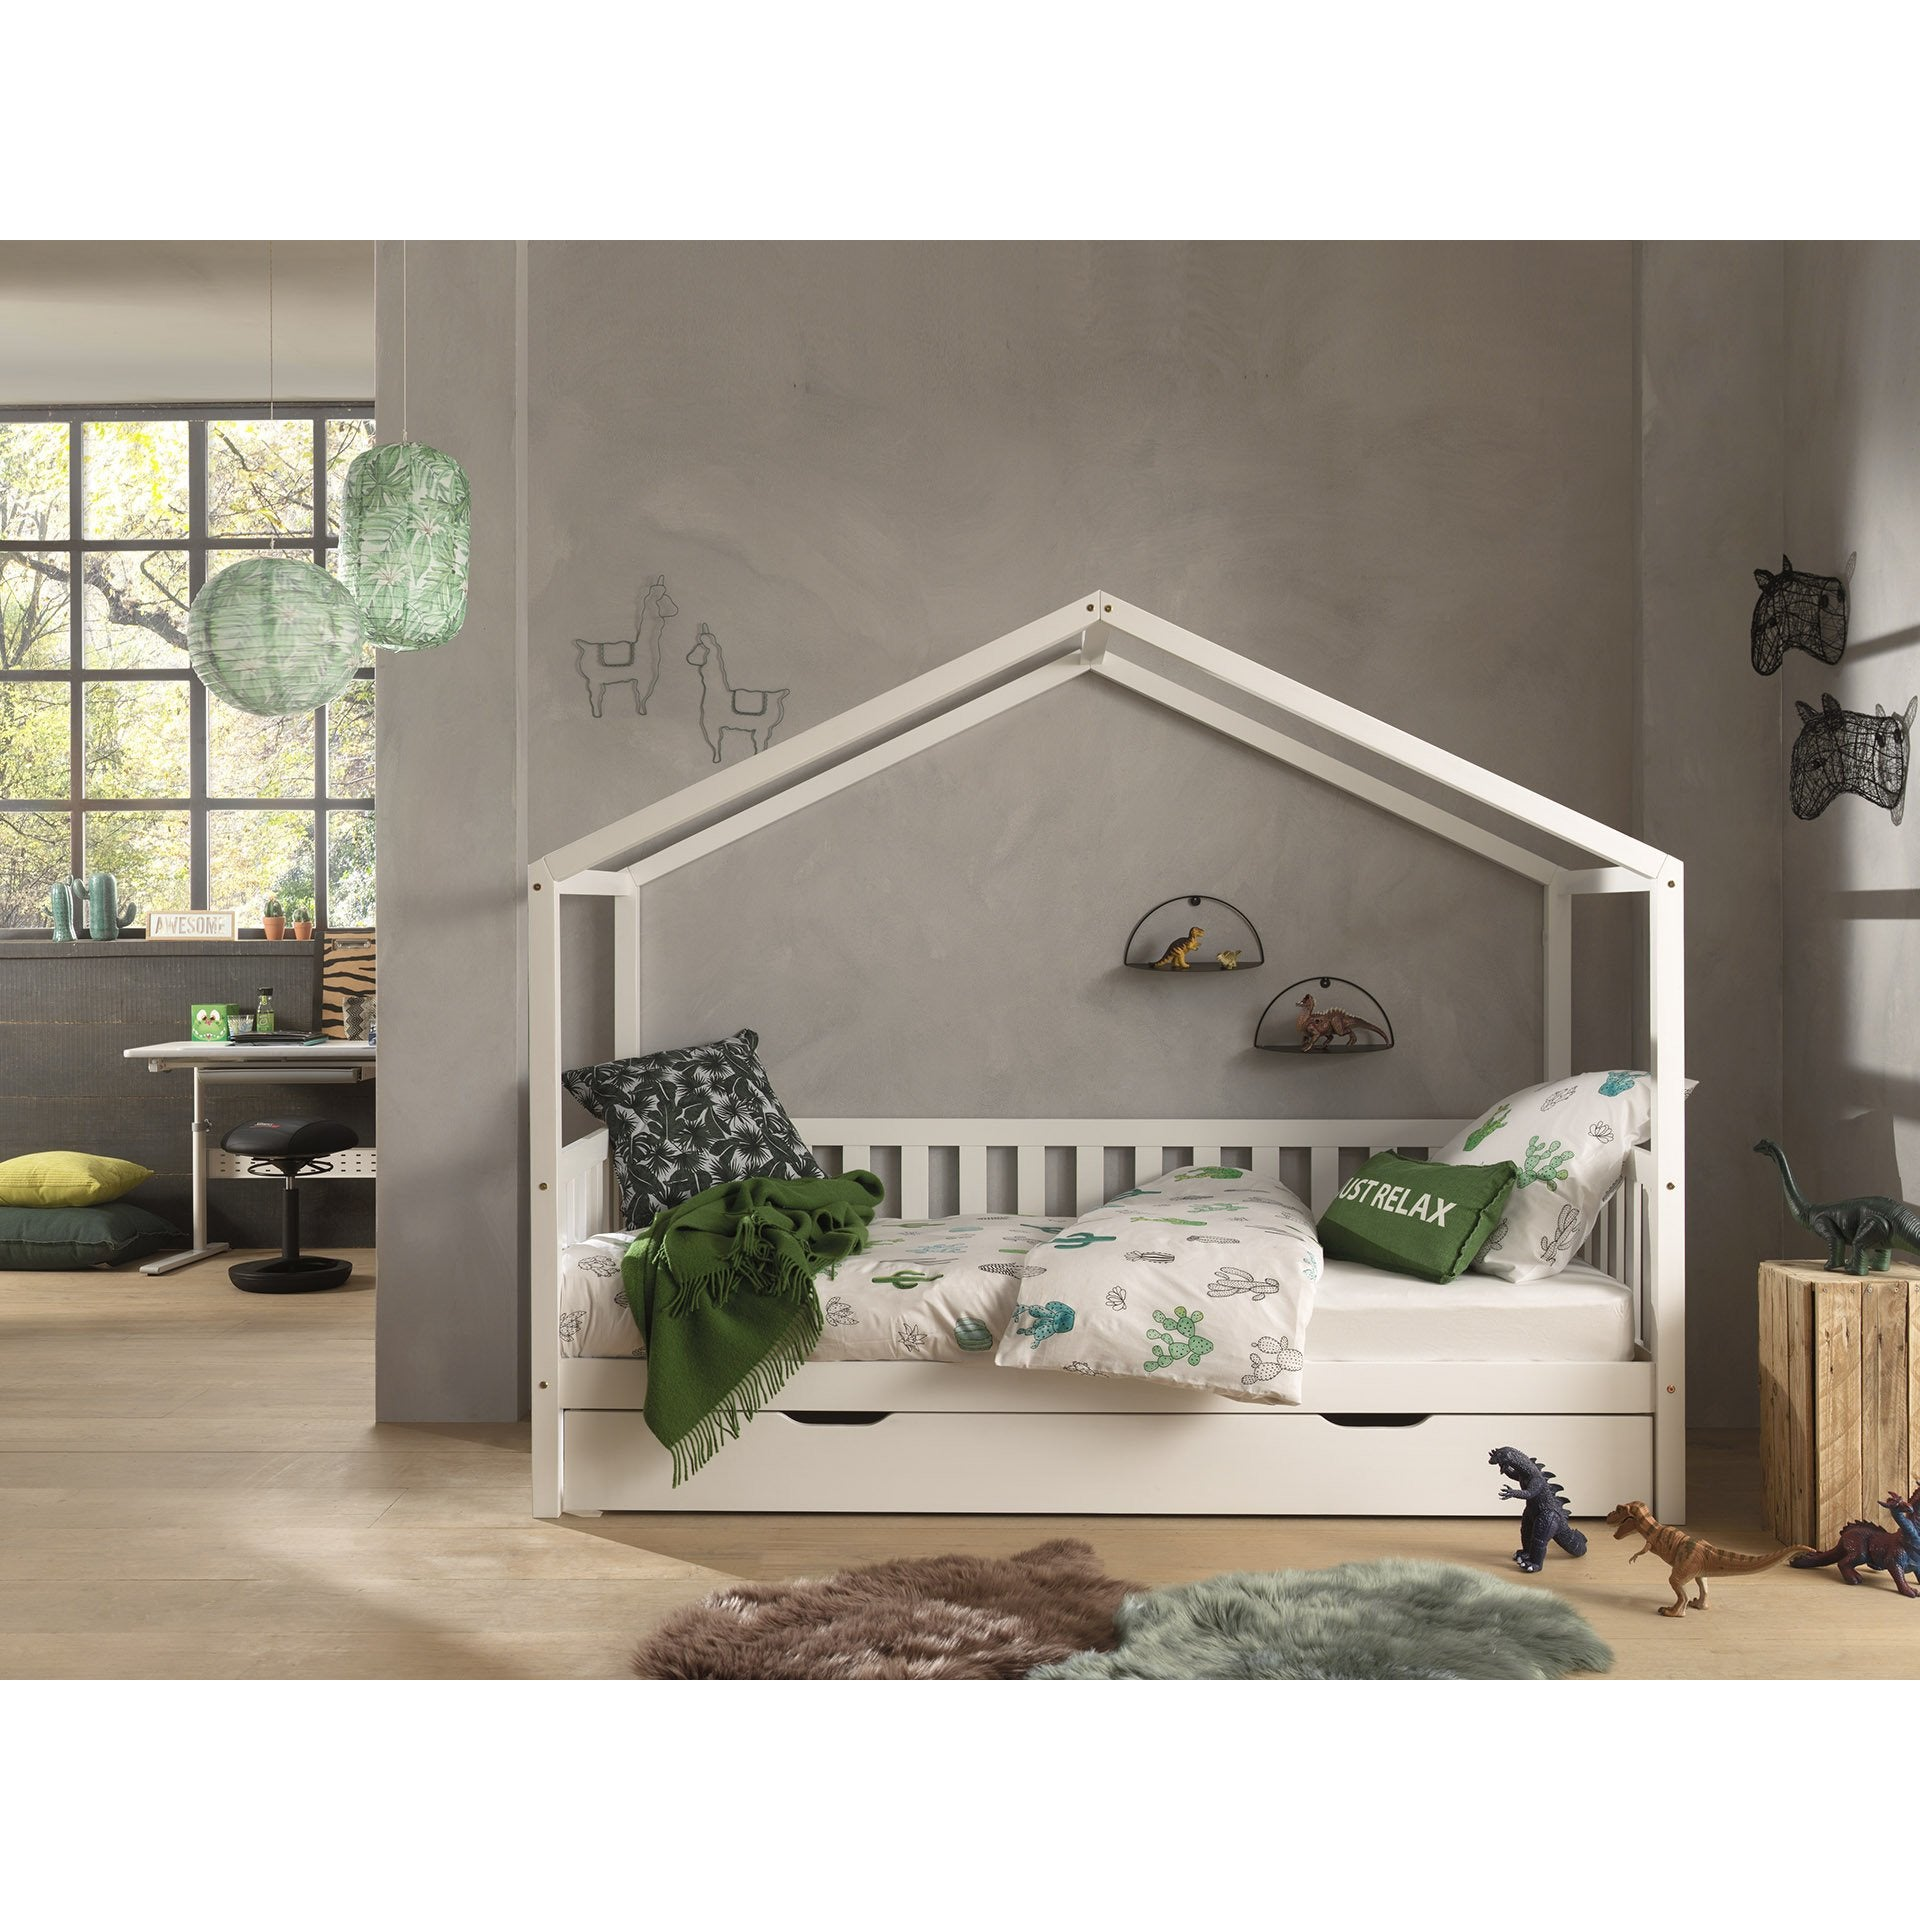 Dallas - Kids House Bed With Backrest 90x200cm